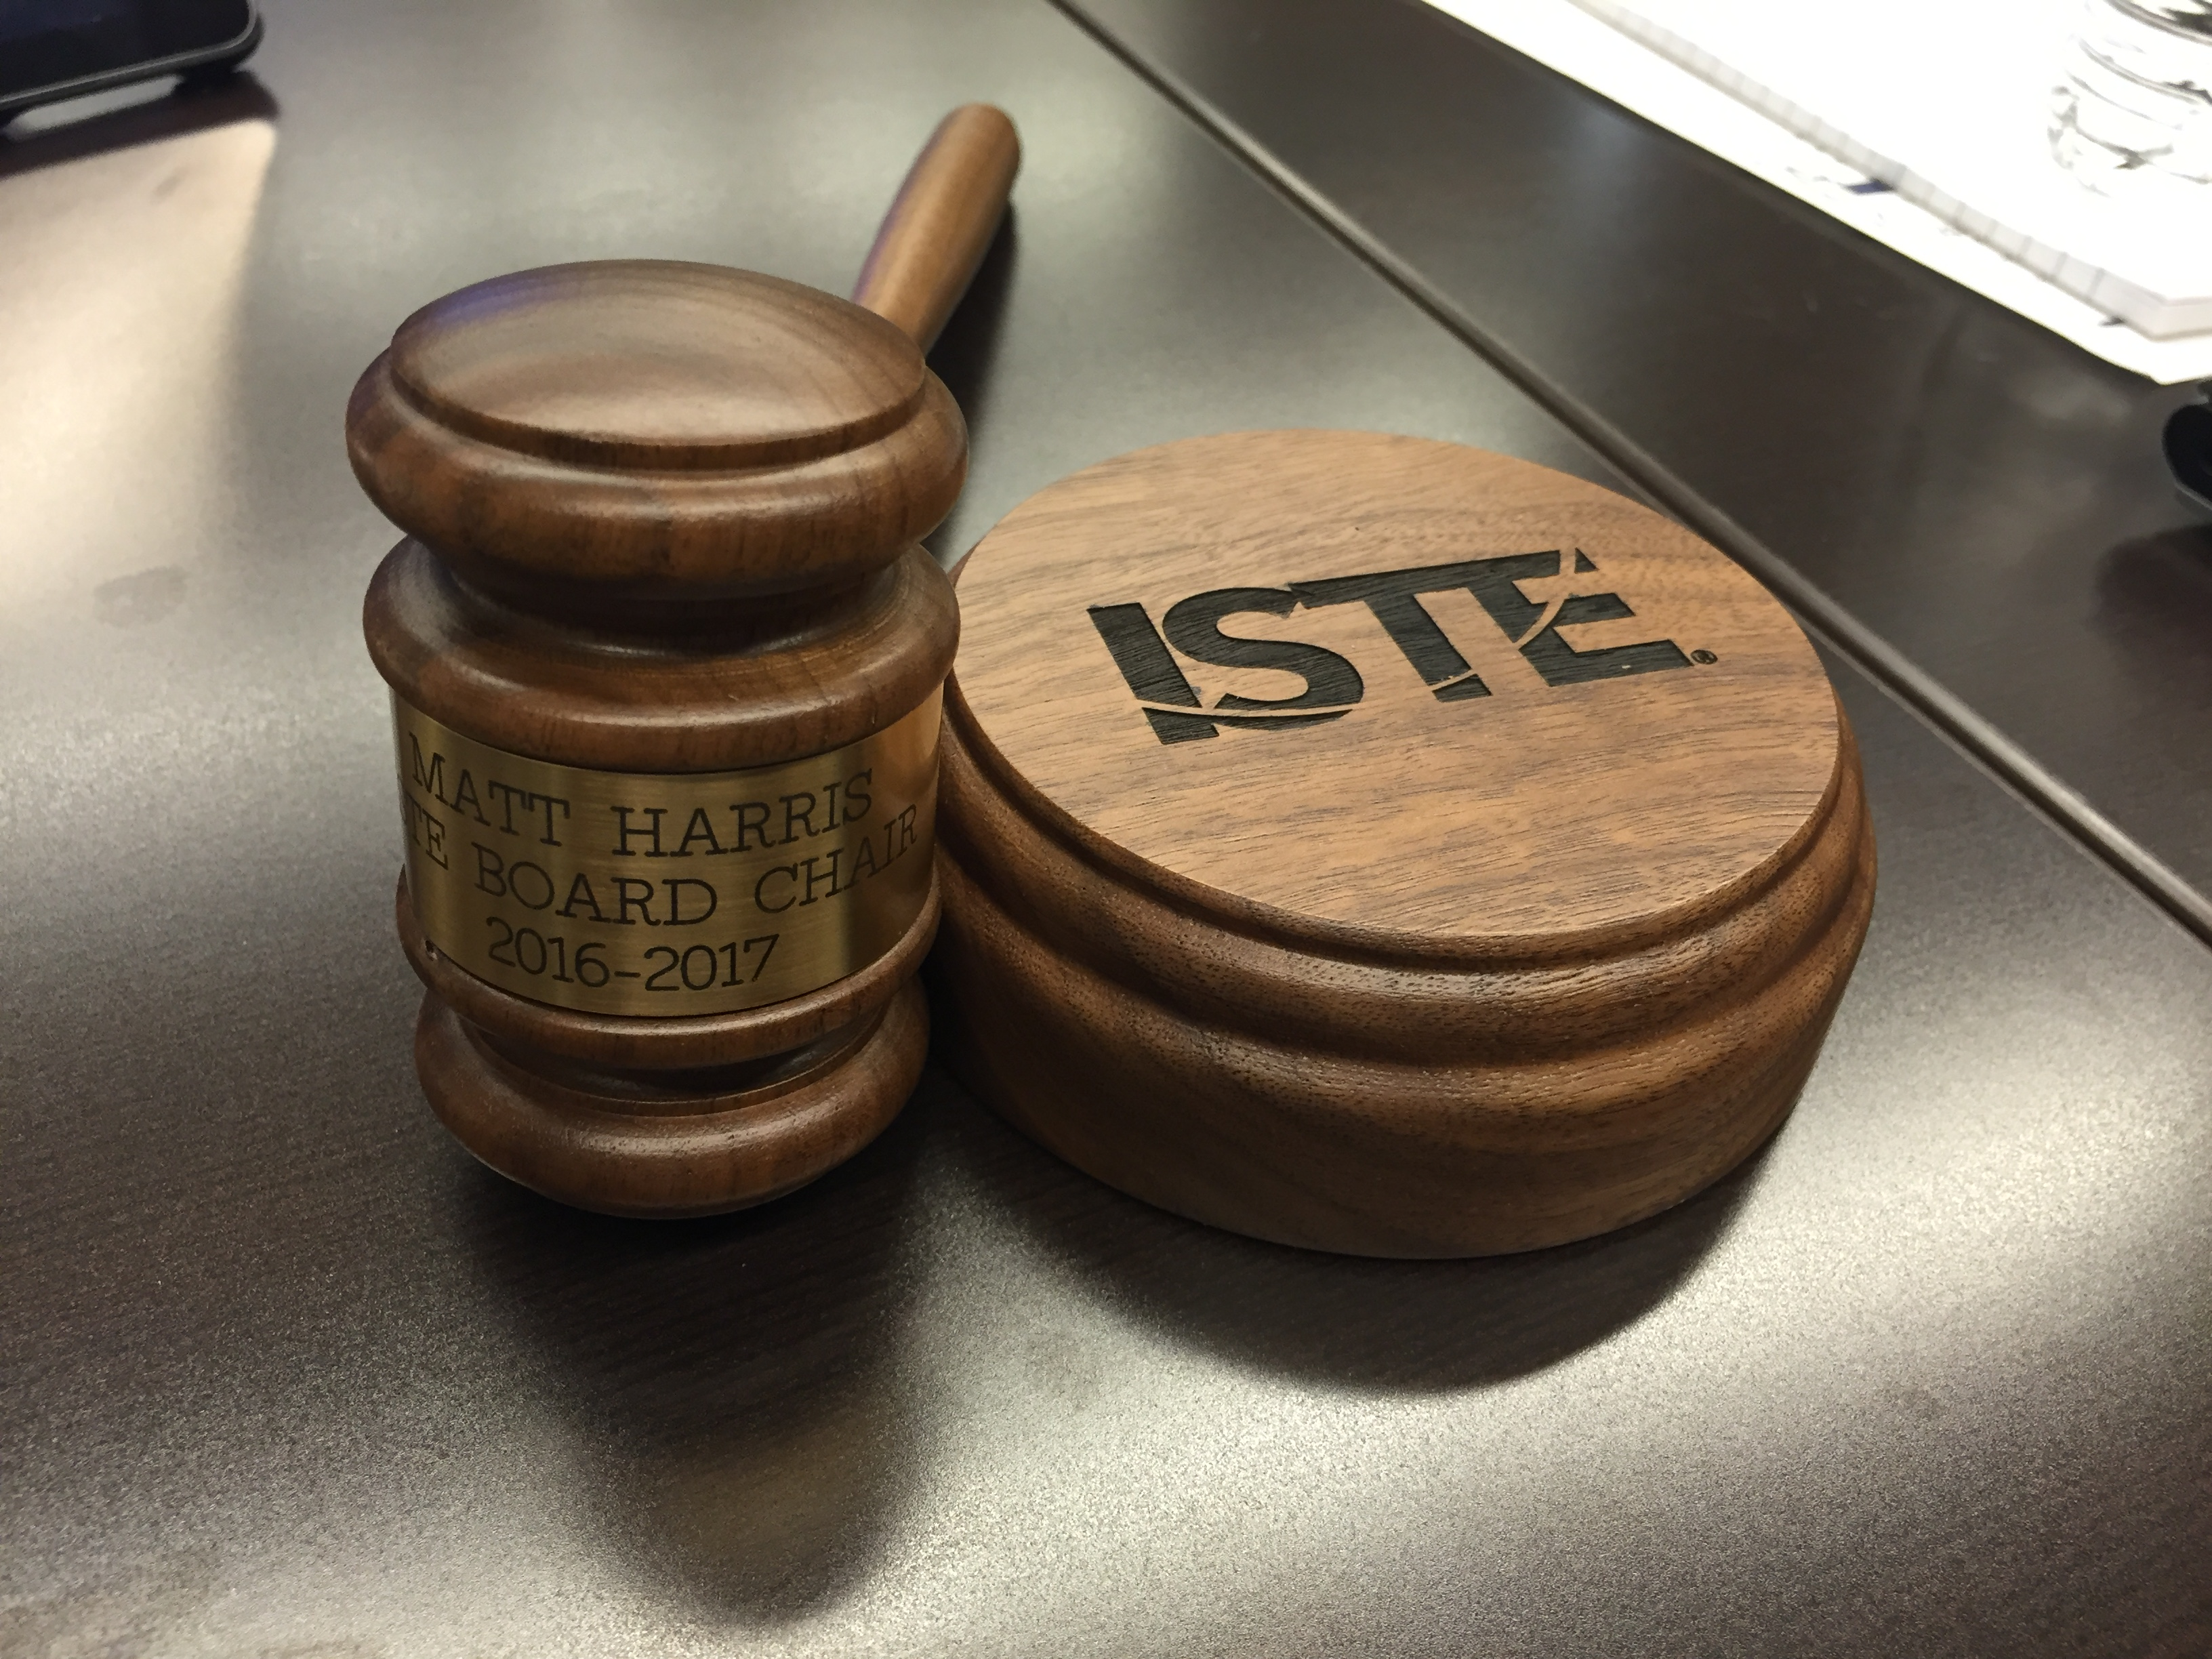 Becoming the Next ISTE Board Chair